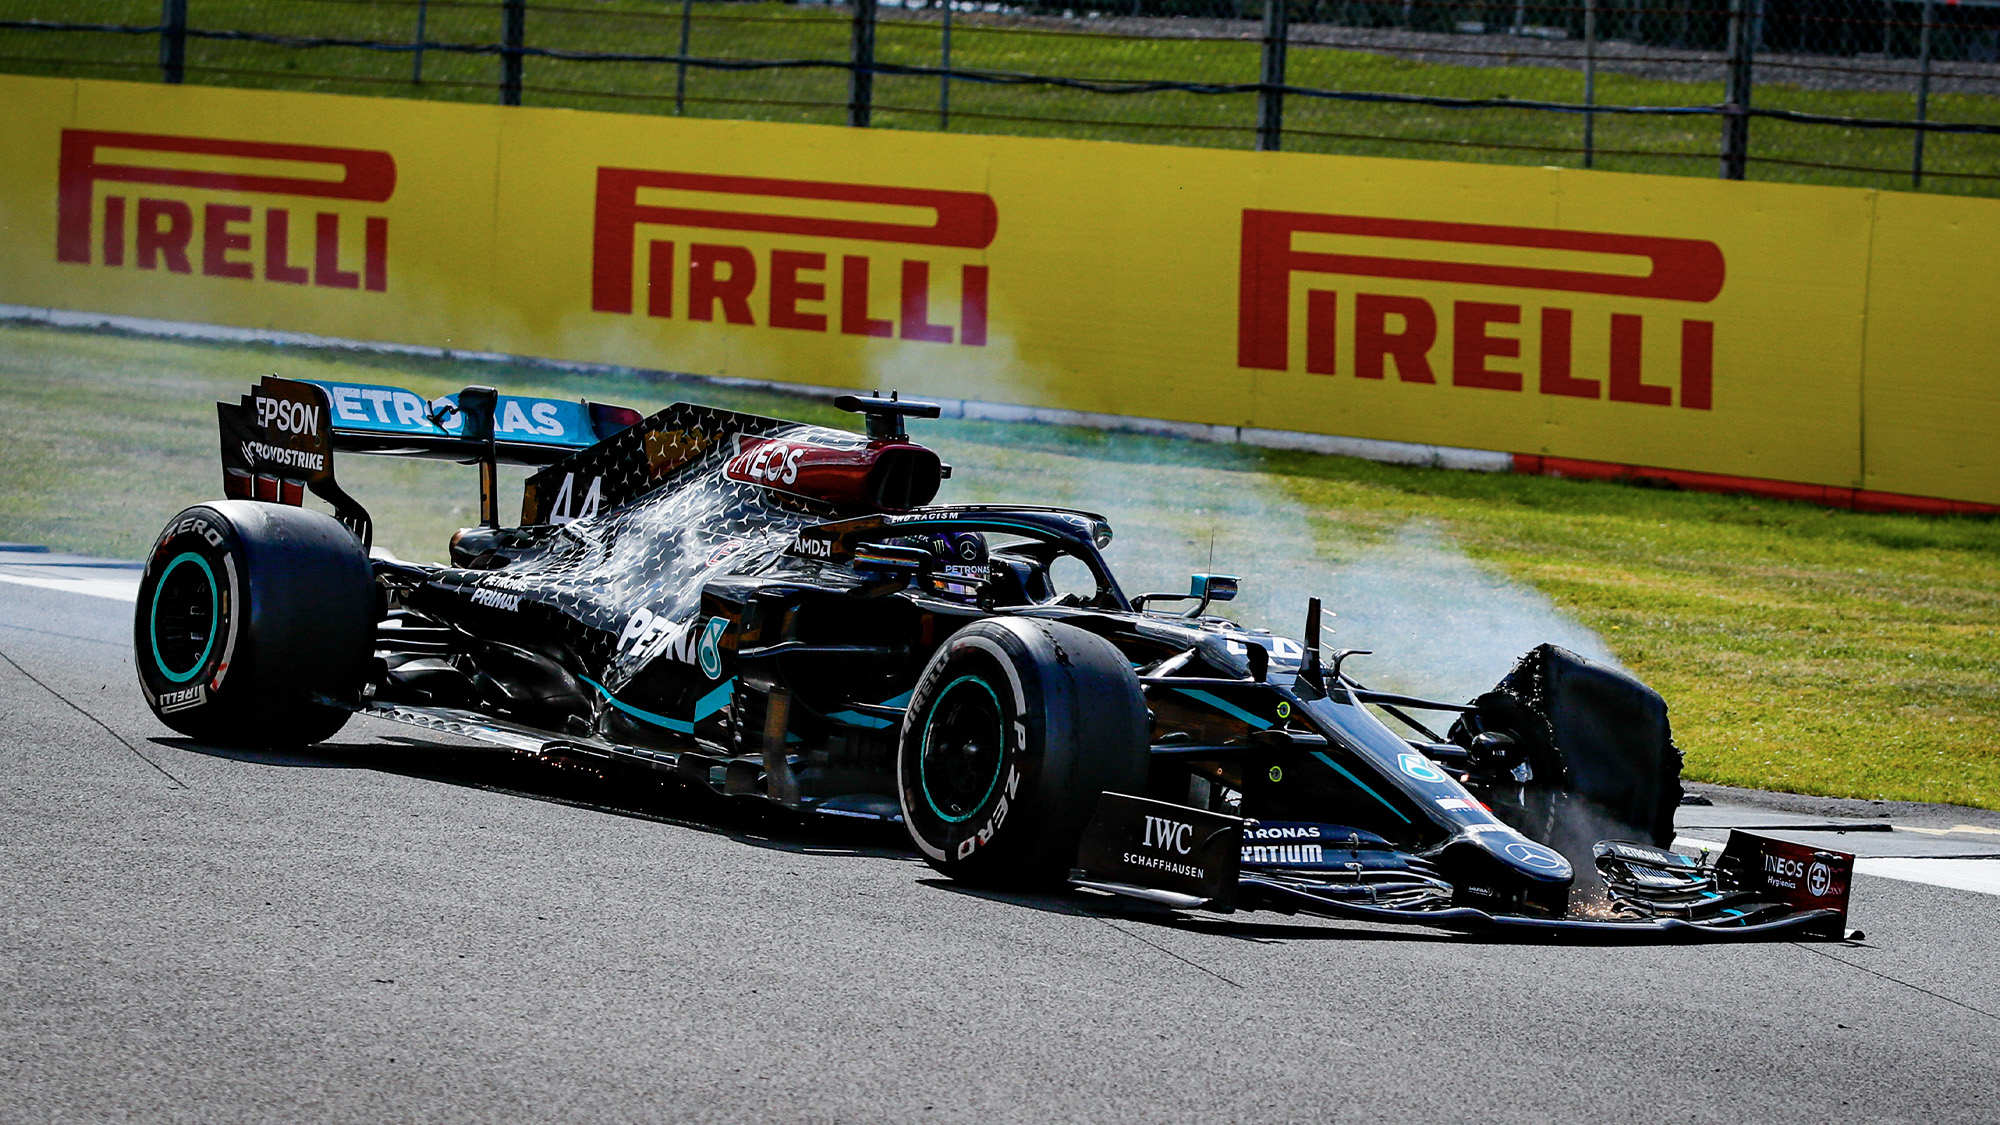 2020 British Grand Prix race report: Hamilton holds on after final lap blowout